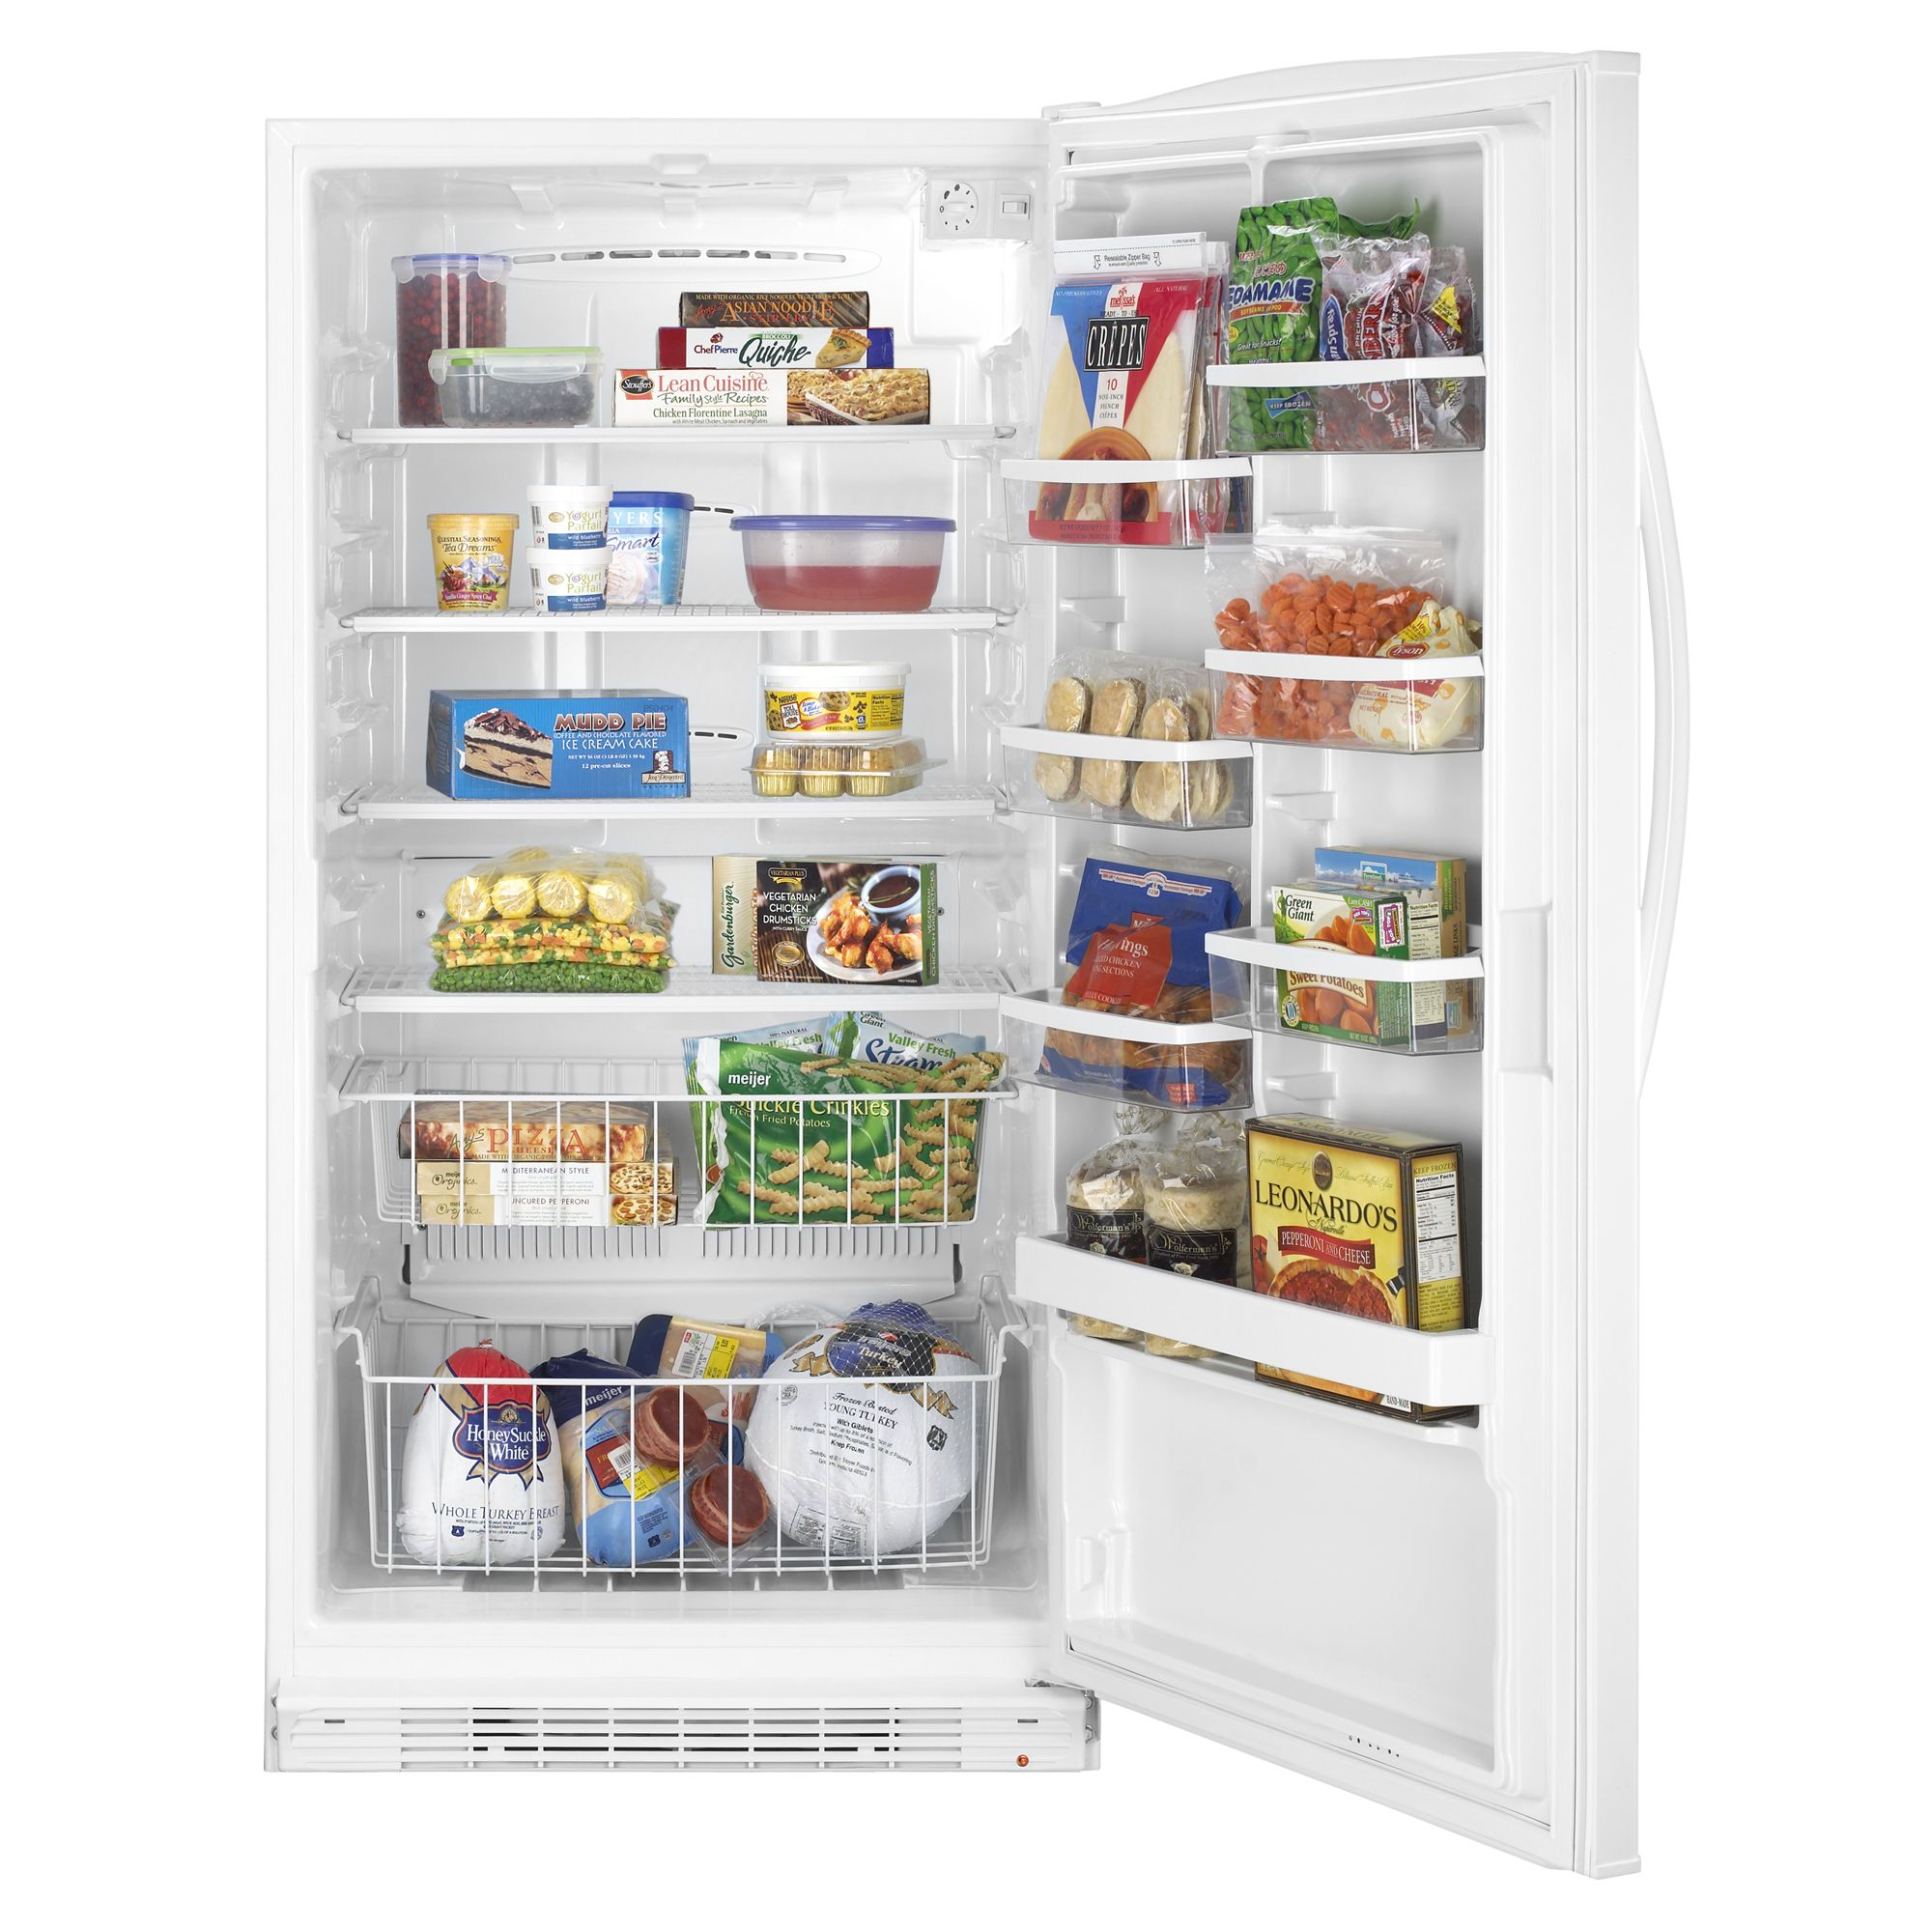 Whirlpool 20.1 cu. ft. Upright Freezer - White